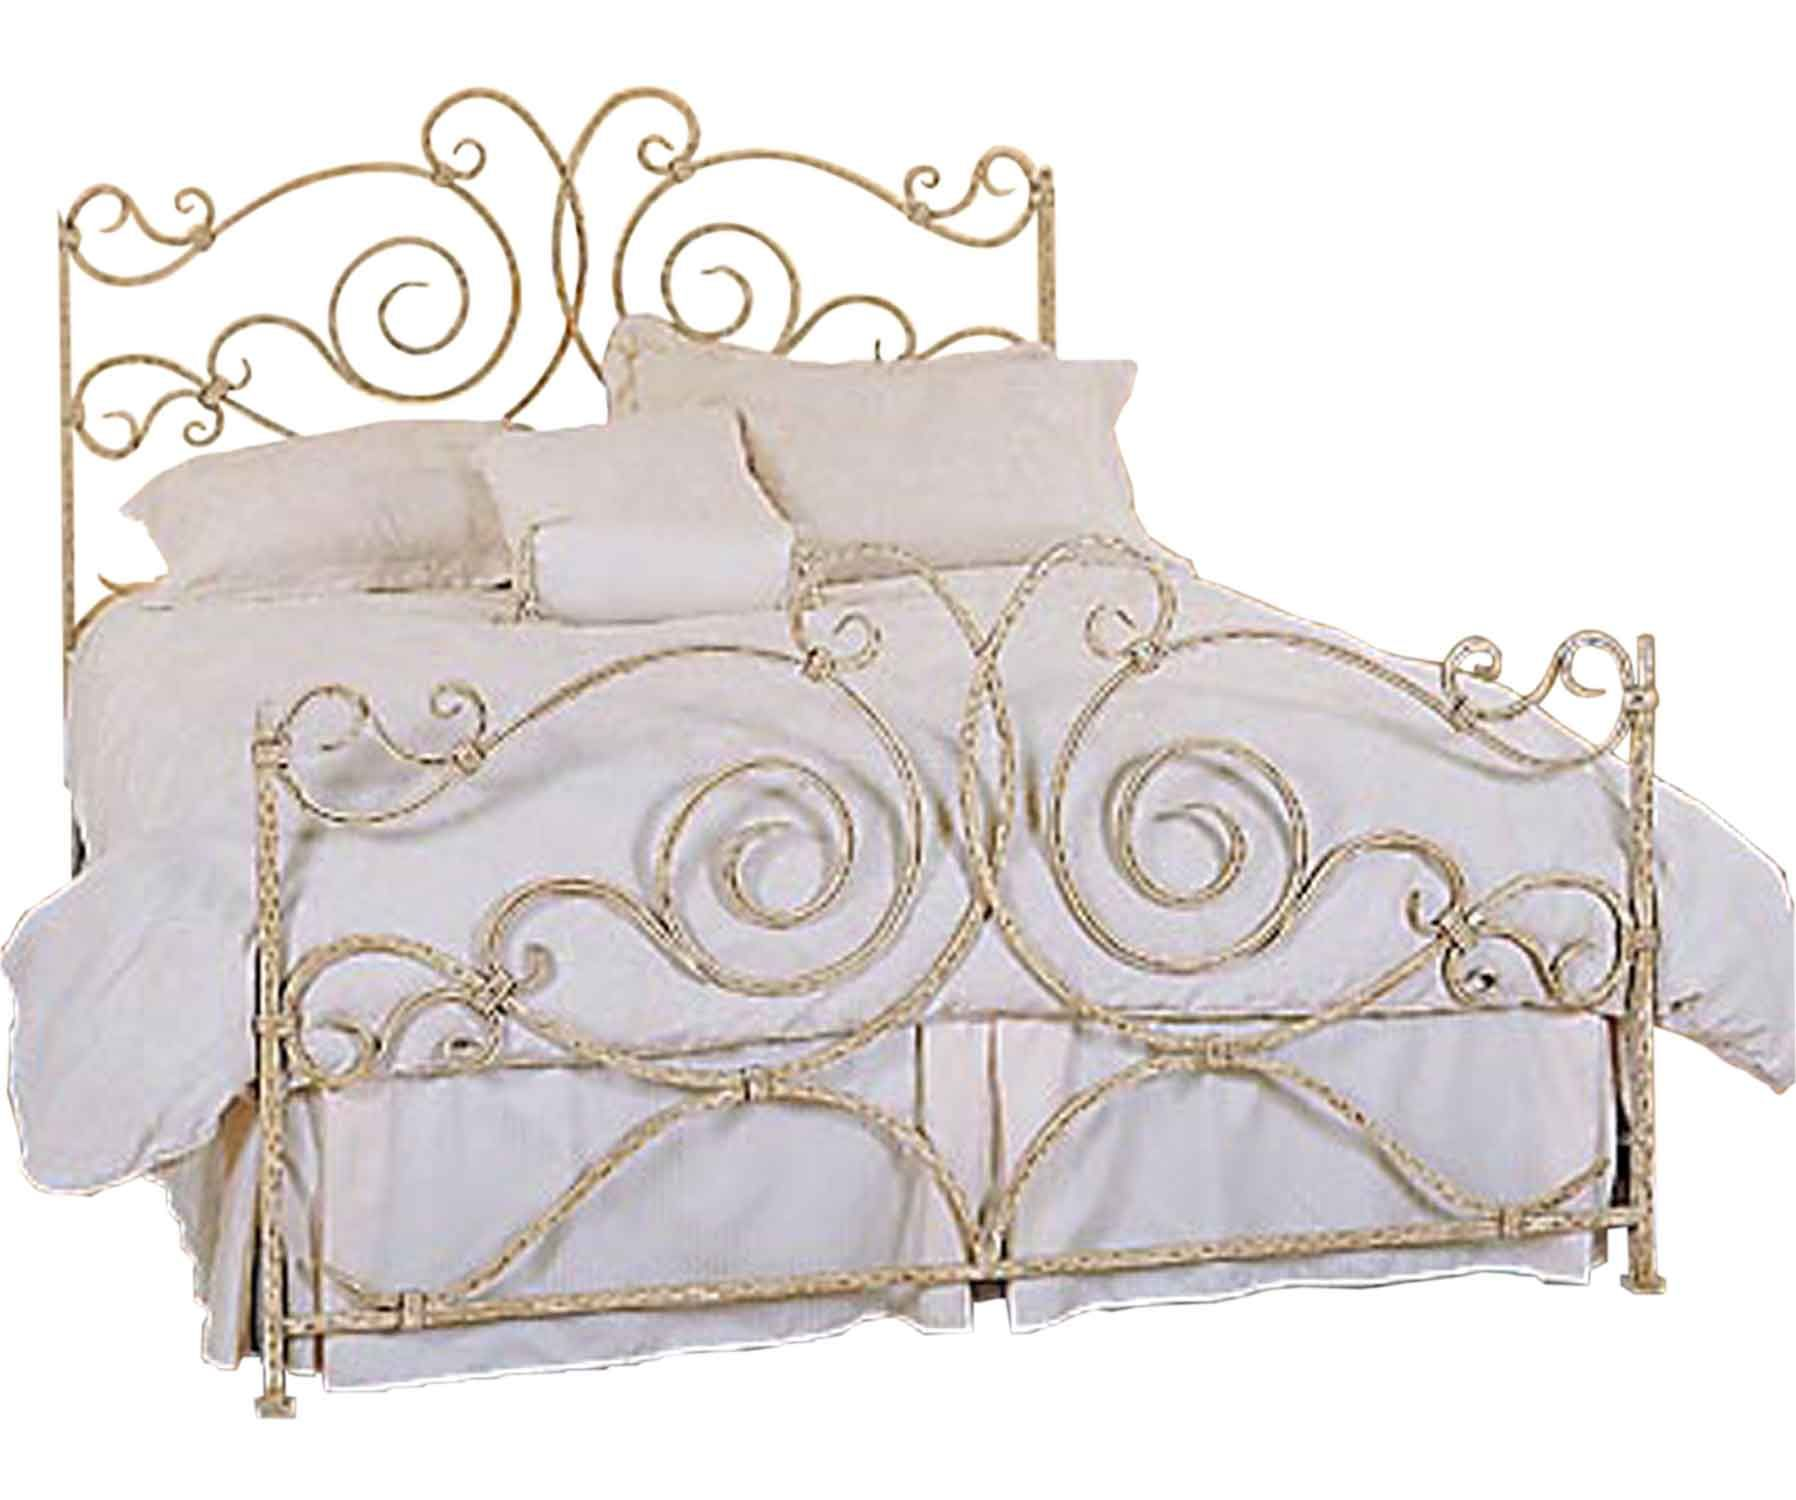 Shabby Chic Wrought Iron Bed Frame With White Bedding Set For Girl